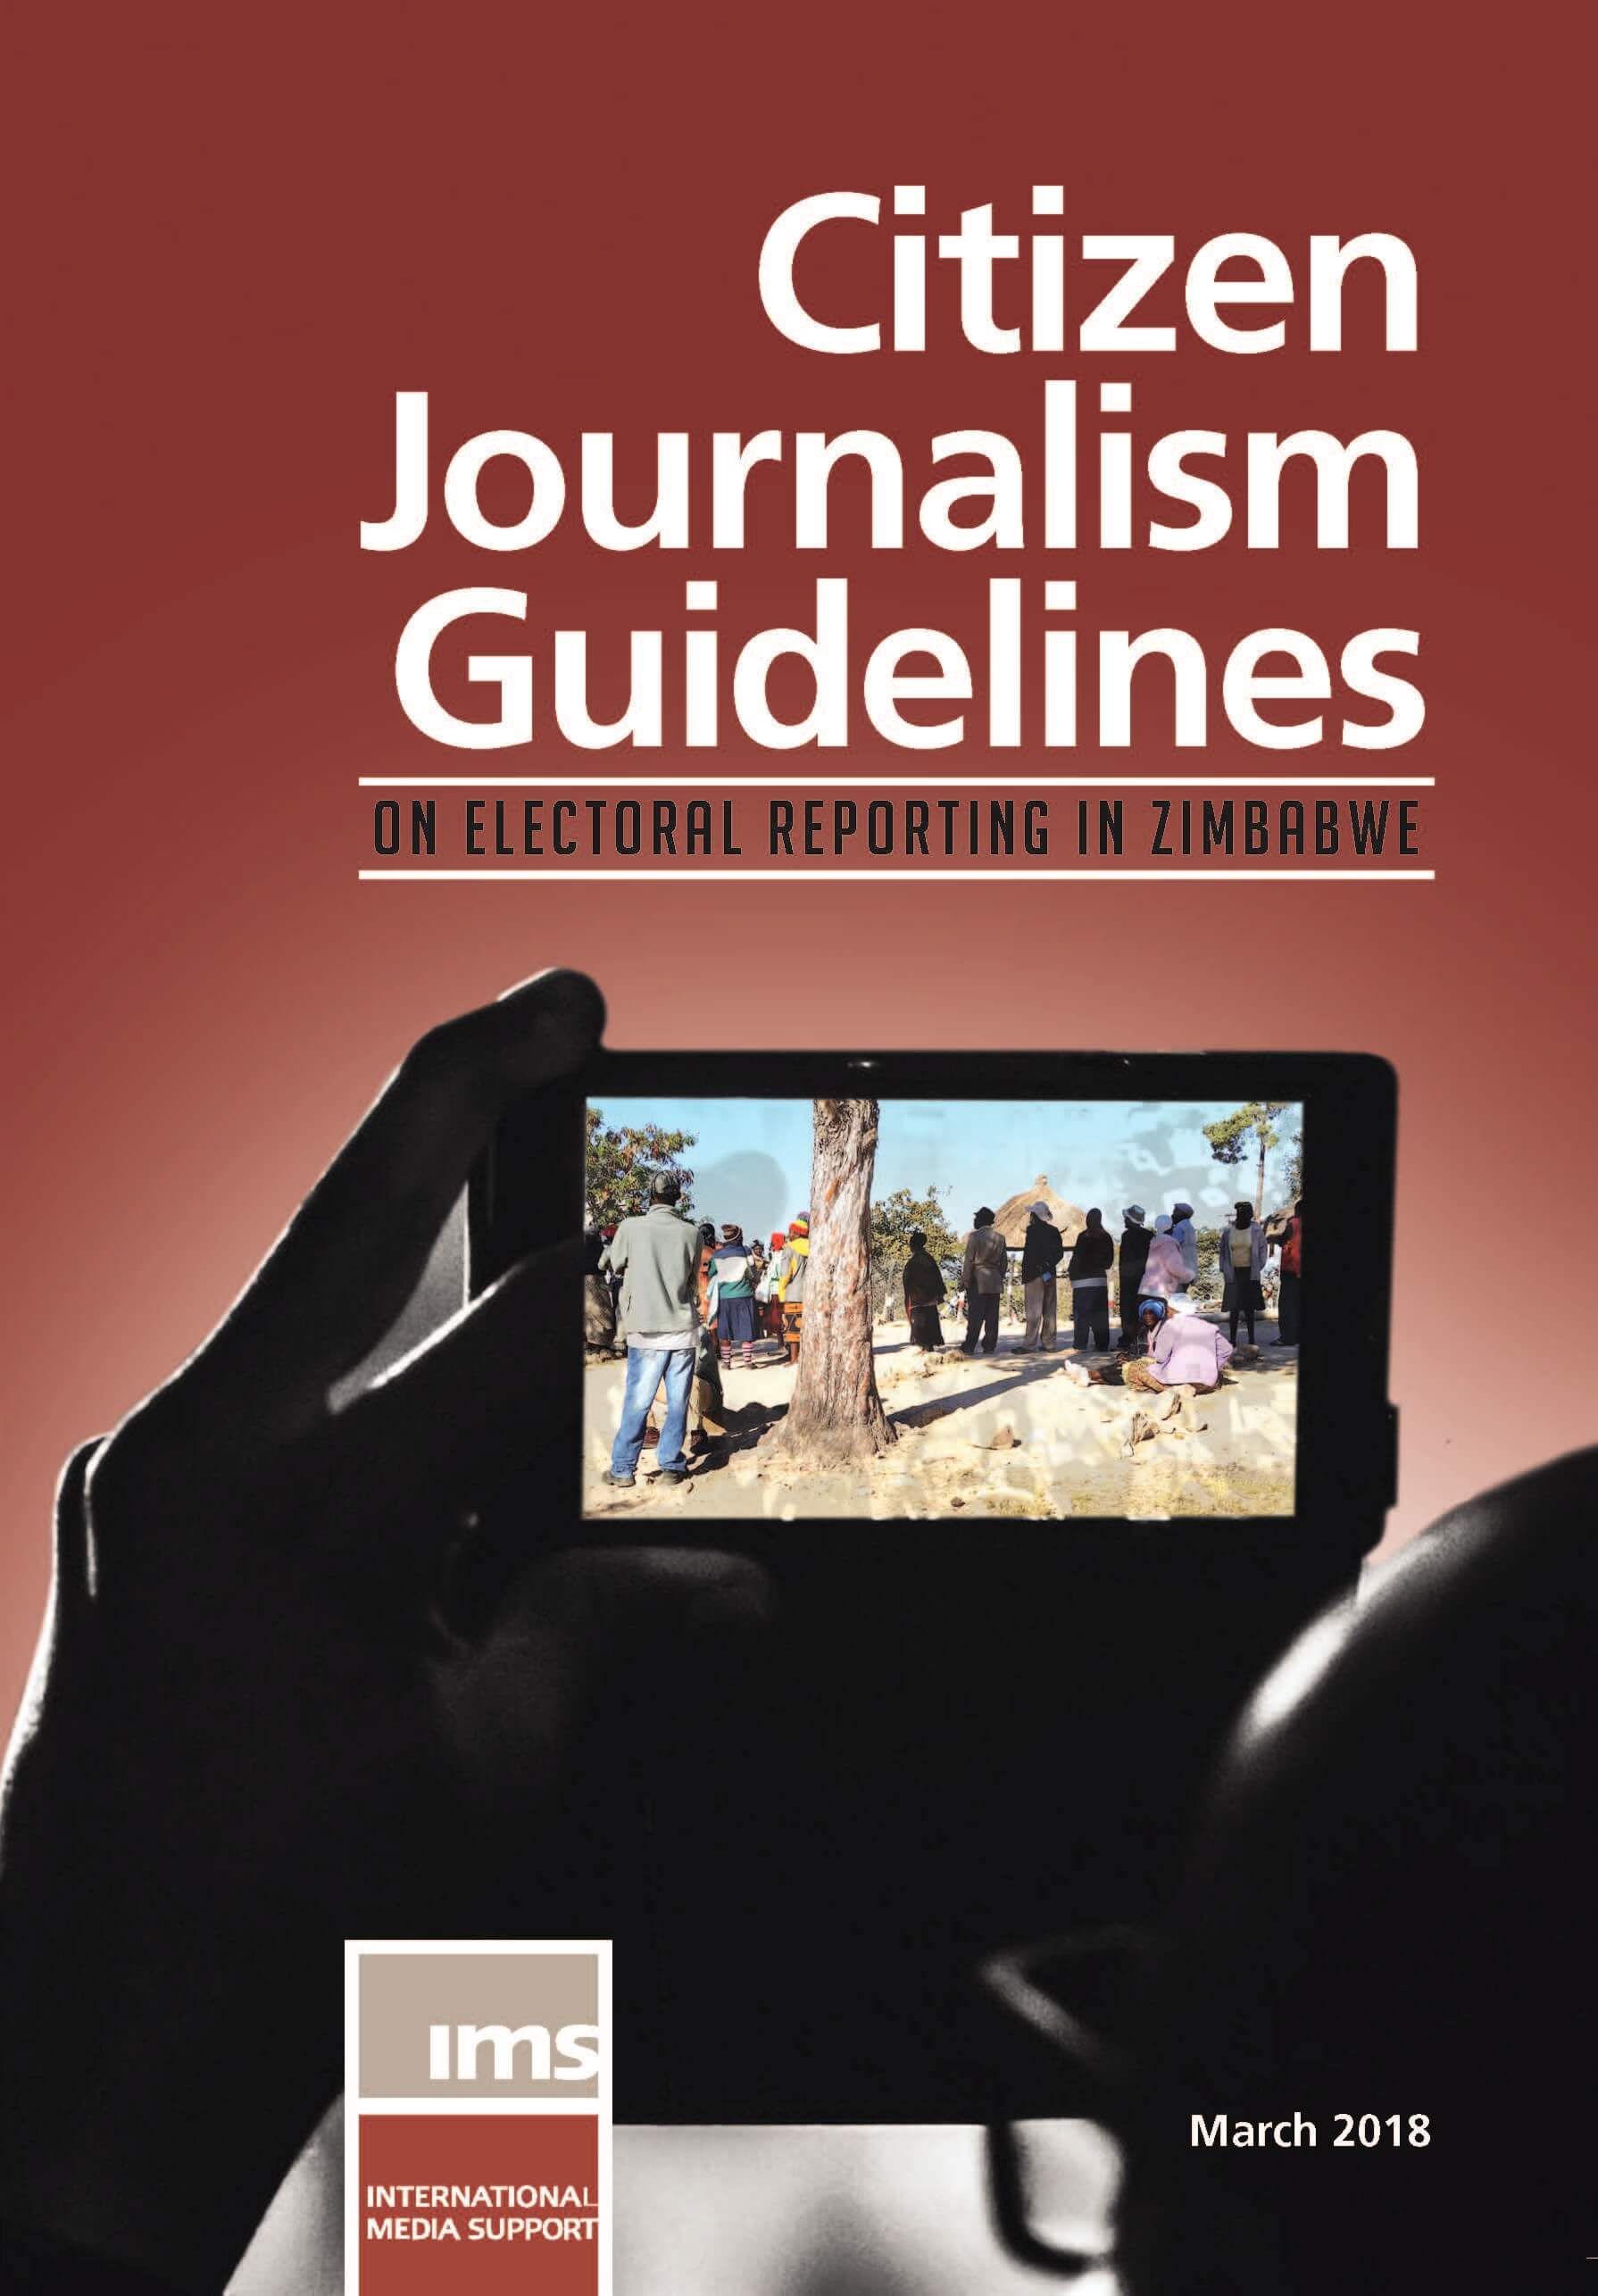 Citizen Journalism Guideline on Electoral Reporting in Zimbabwe